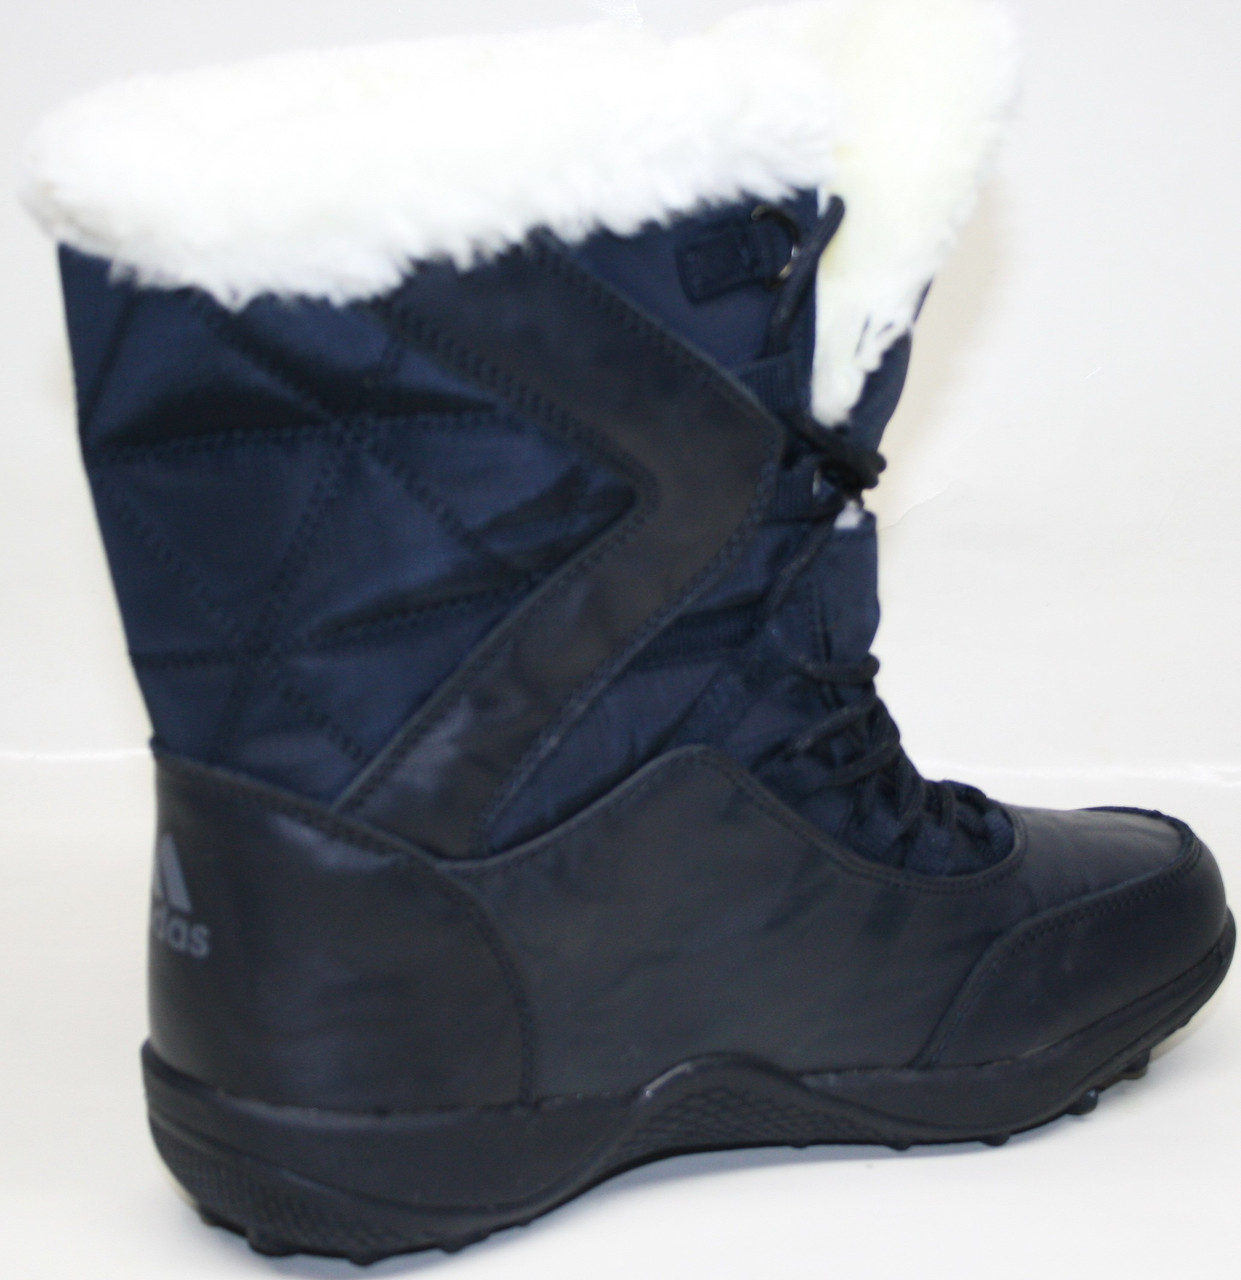 036e8fb5 ... Ботинки кроссовки winter boots adidas climaproof Navy - Dark Gray., ...